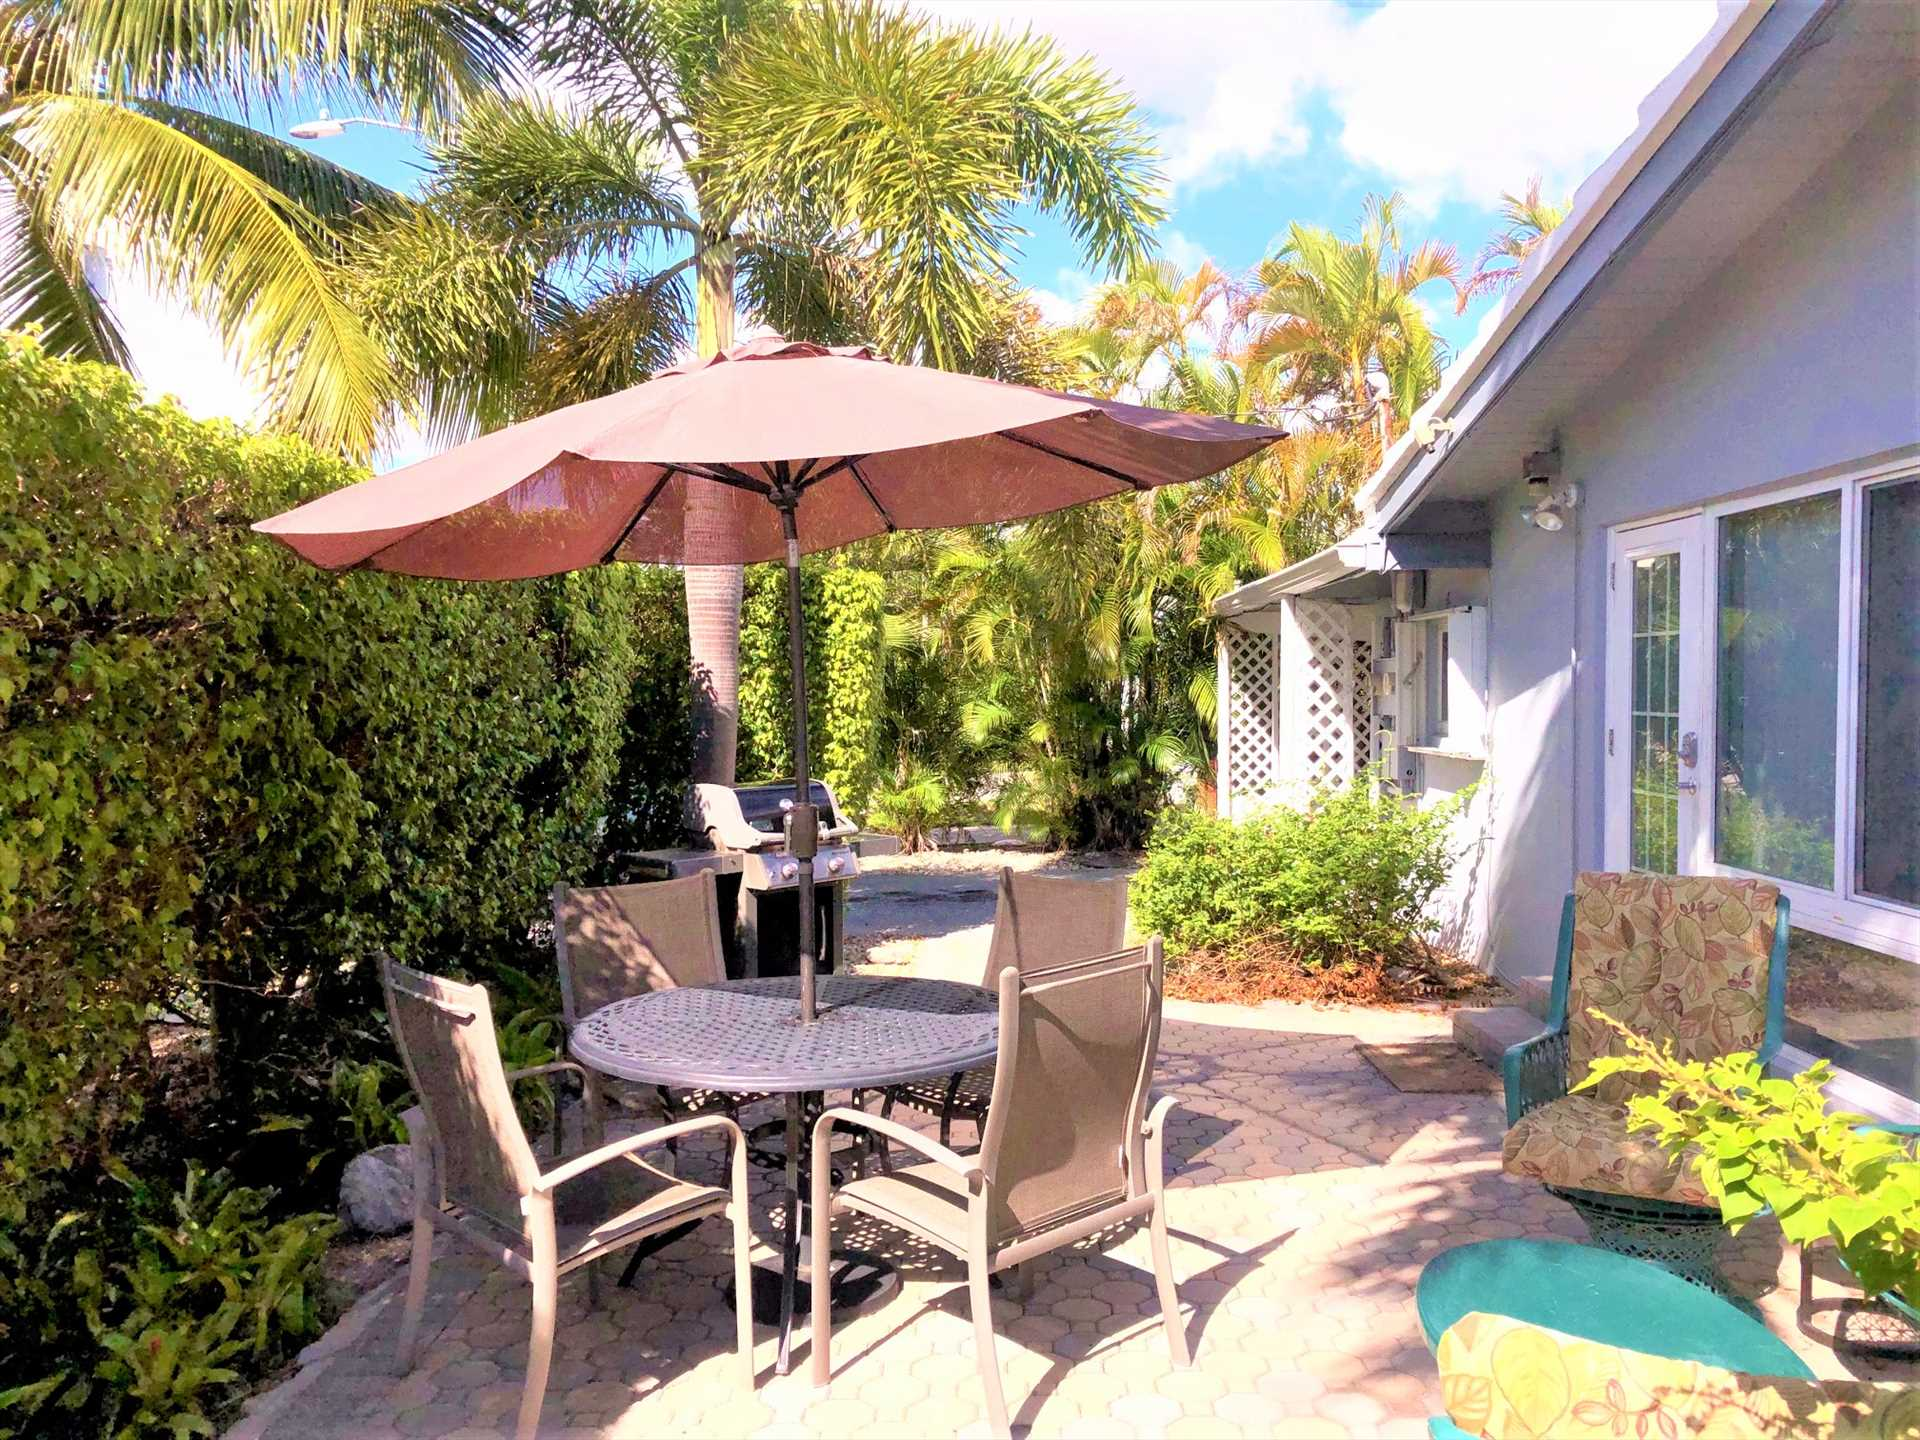 Dine on the patio South Florida style!